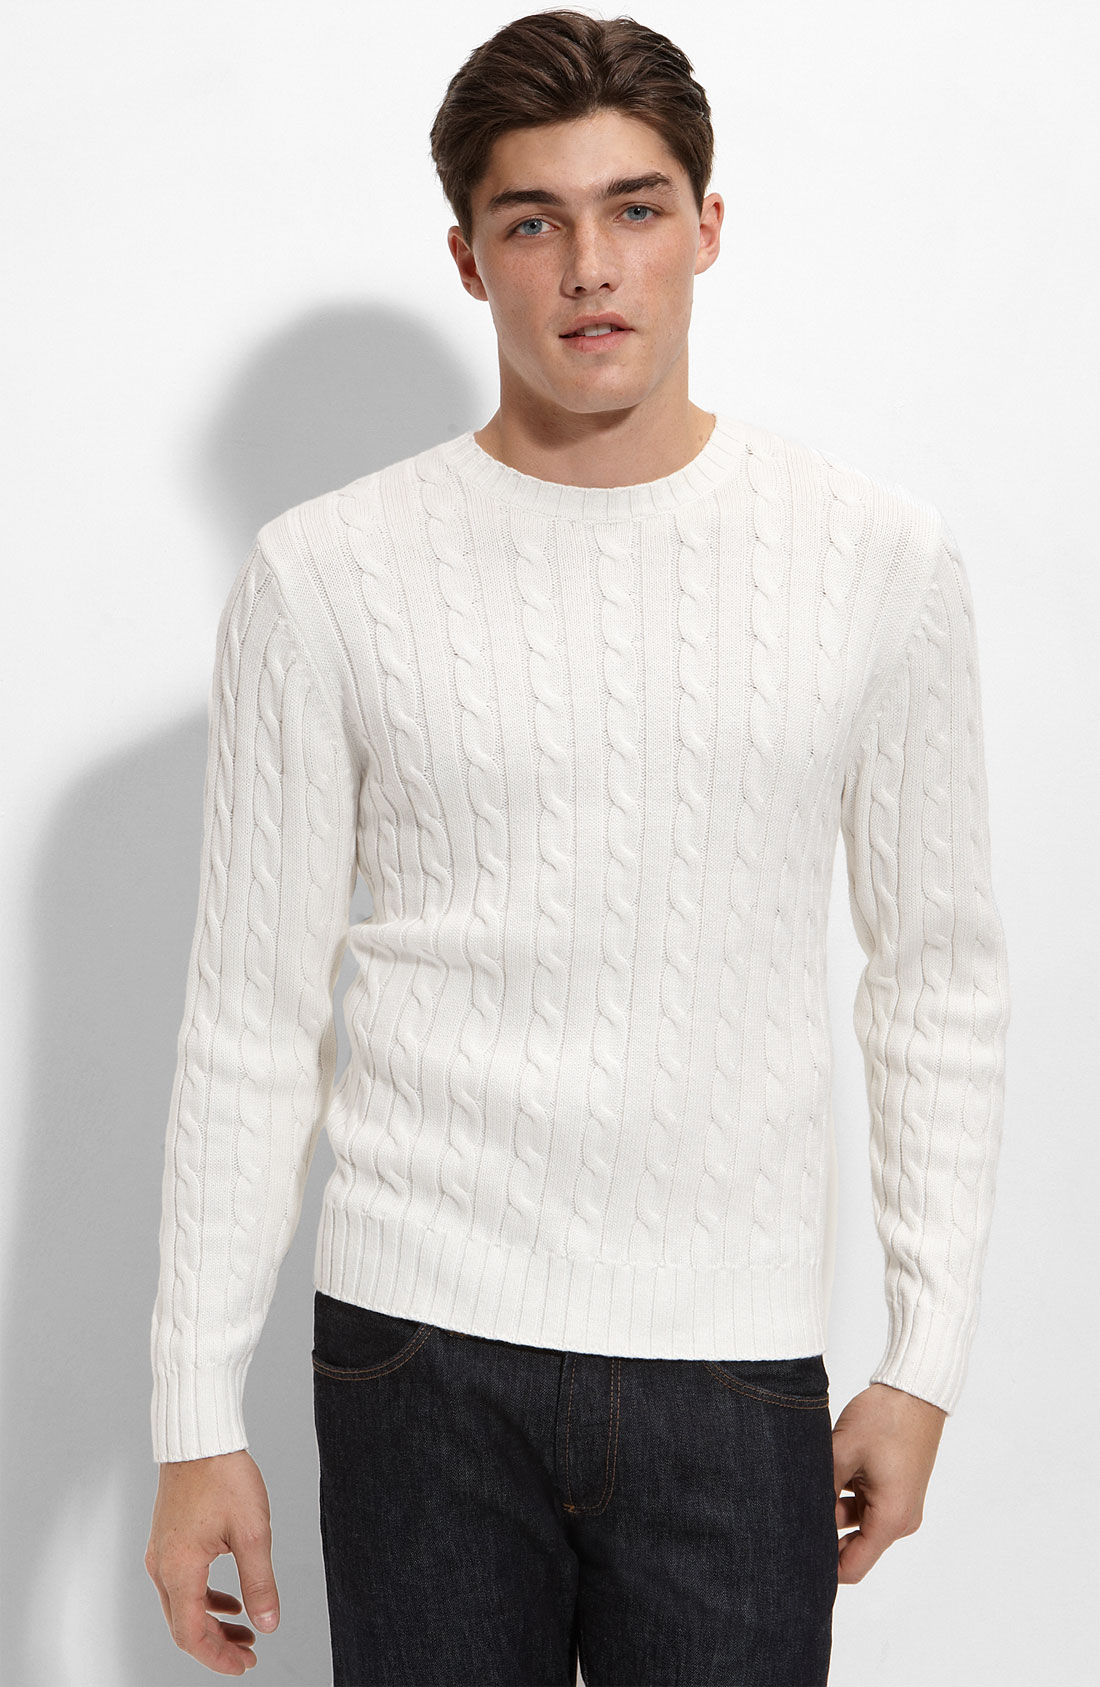 Knitting Sweaters For Men : Athletic fit cable knit cotton cashmere sweater in